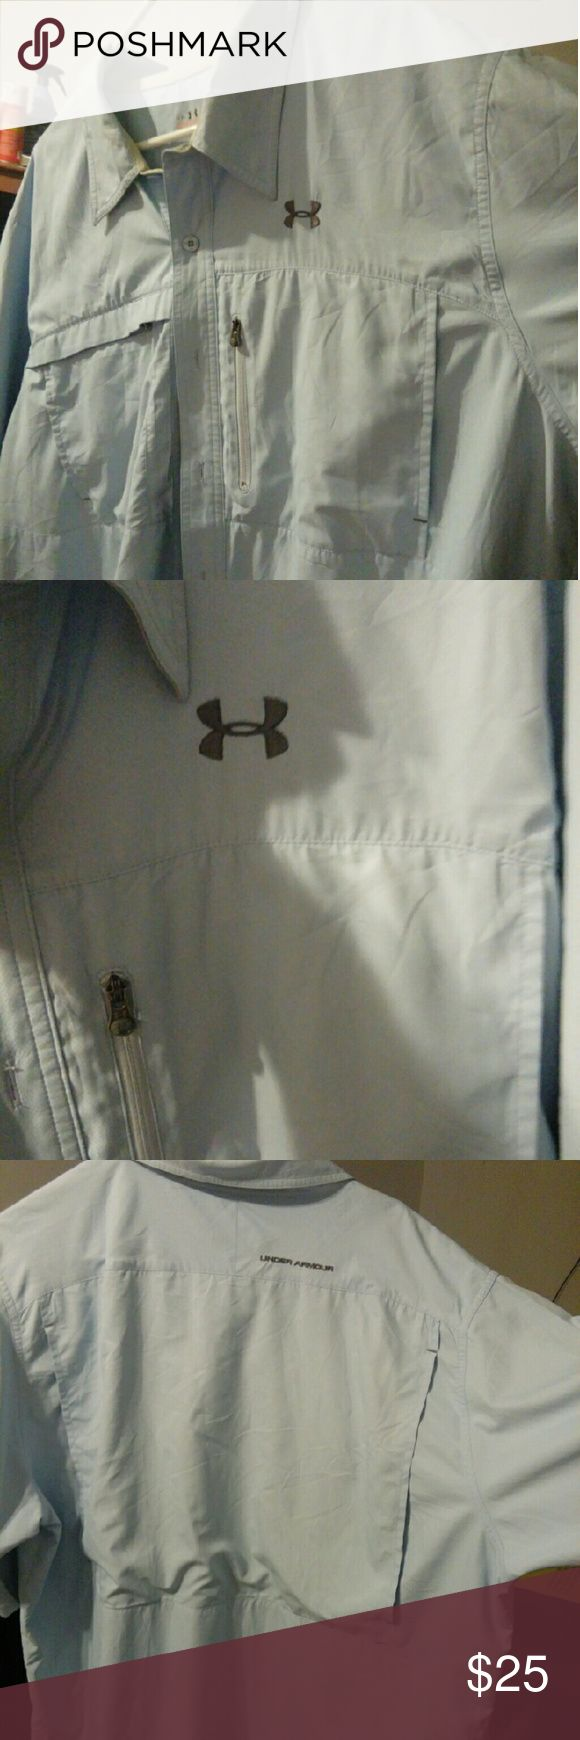 Under Armour Men's Short Sleeve Fishing Shirt Used but loved. Like new feels great in a breezy day. Under Armour Shirts Casual Button Down Shirts